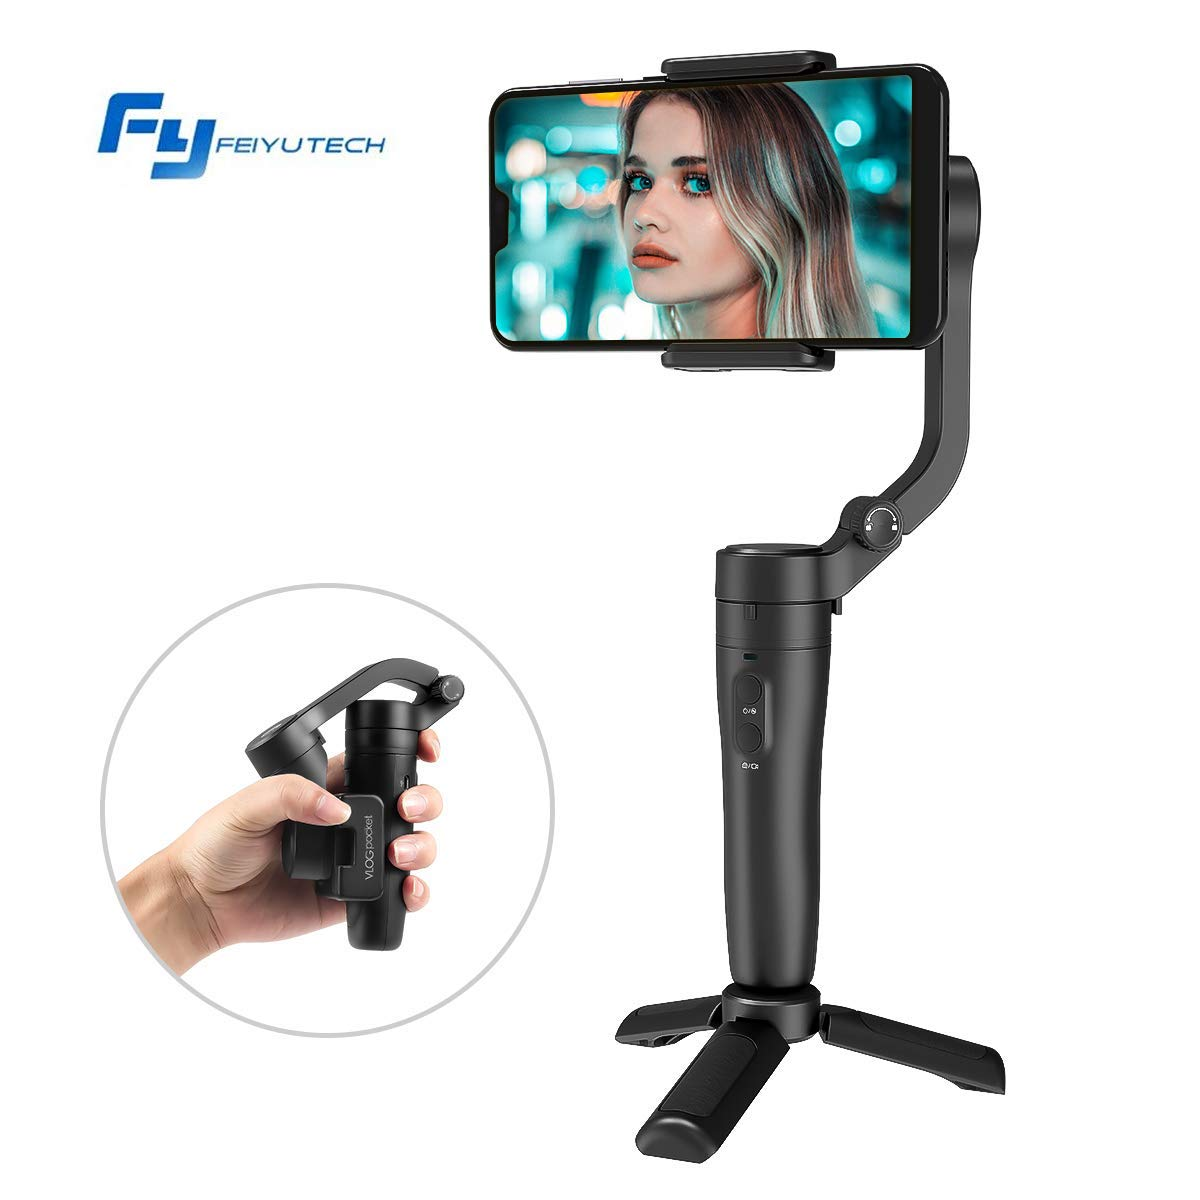 FeiyuTech Vlog Pocket Foldable 3 Axis Smartphone Handheld Gimbal Stabilizer for iPhone 11 Xs Max Xr X 8 Plus 7 6 SE Android Smartphone Samsung Galaxy S9 S8 S7,240 g Payload,-Black S9 S8